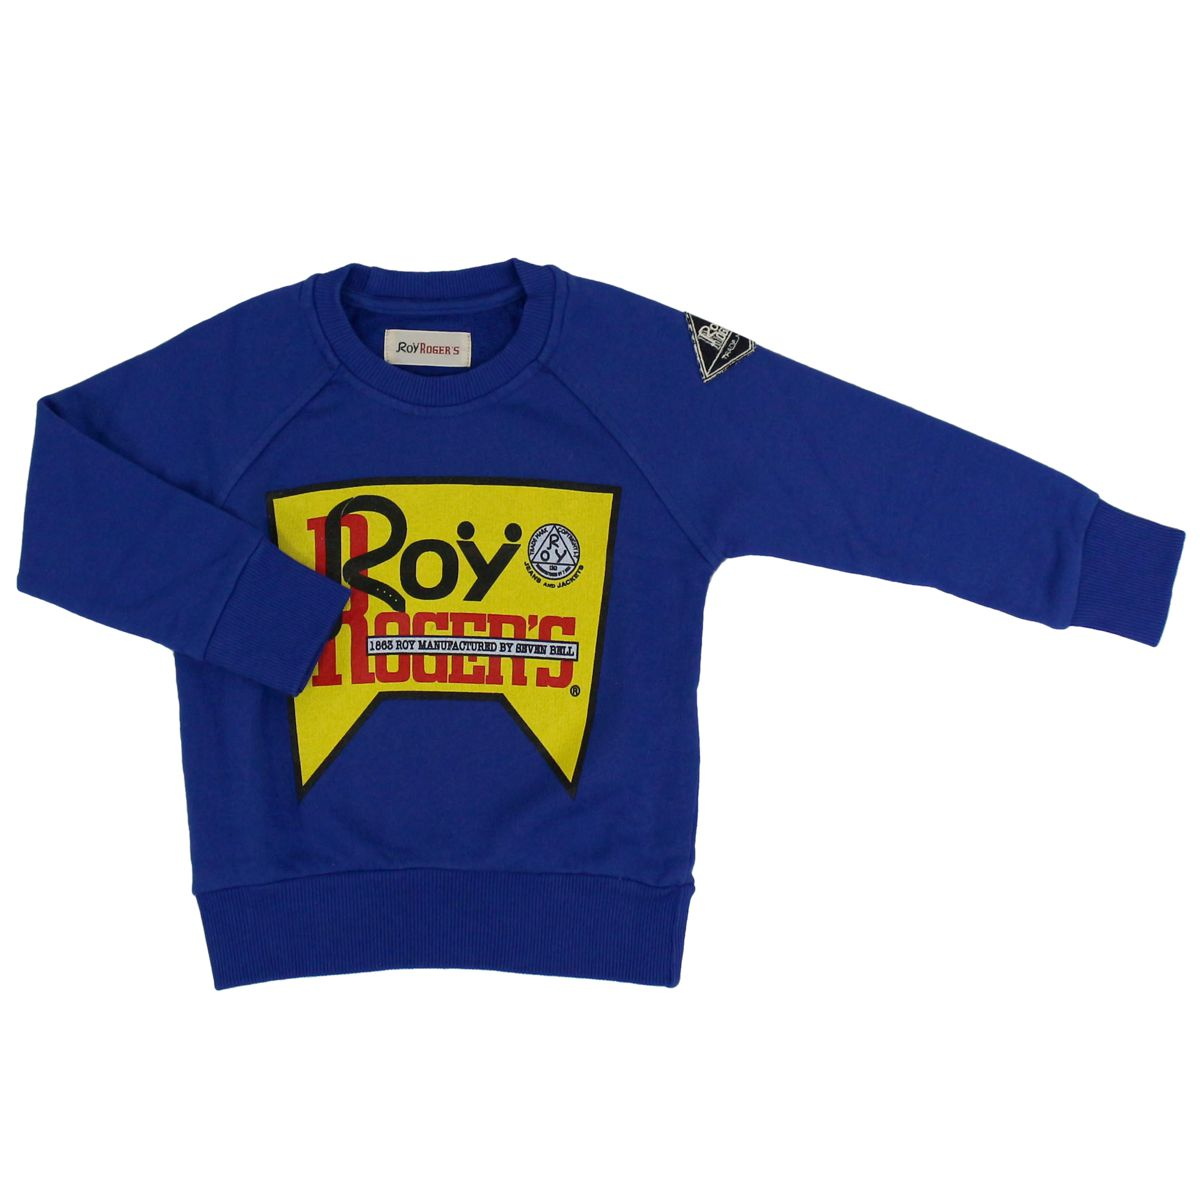 Cotton sweatshirt with logo Royal ROY ROGER'S